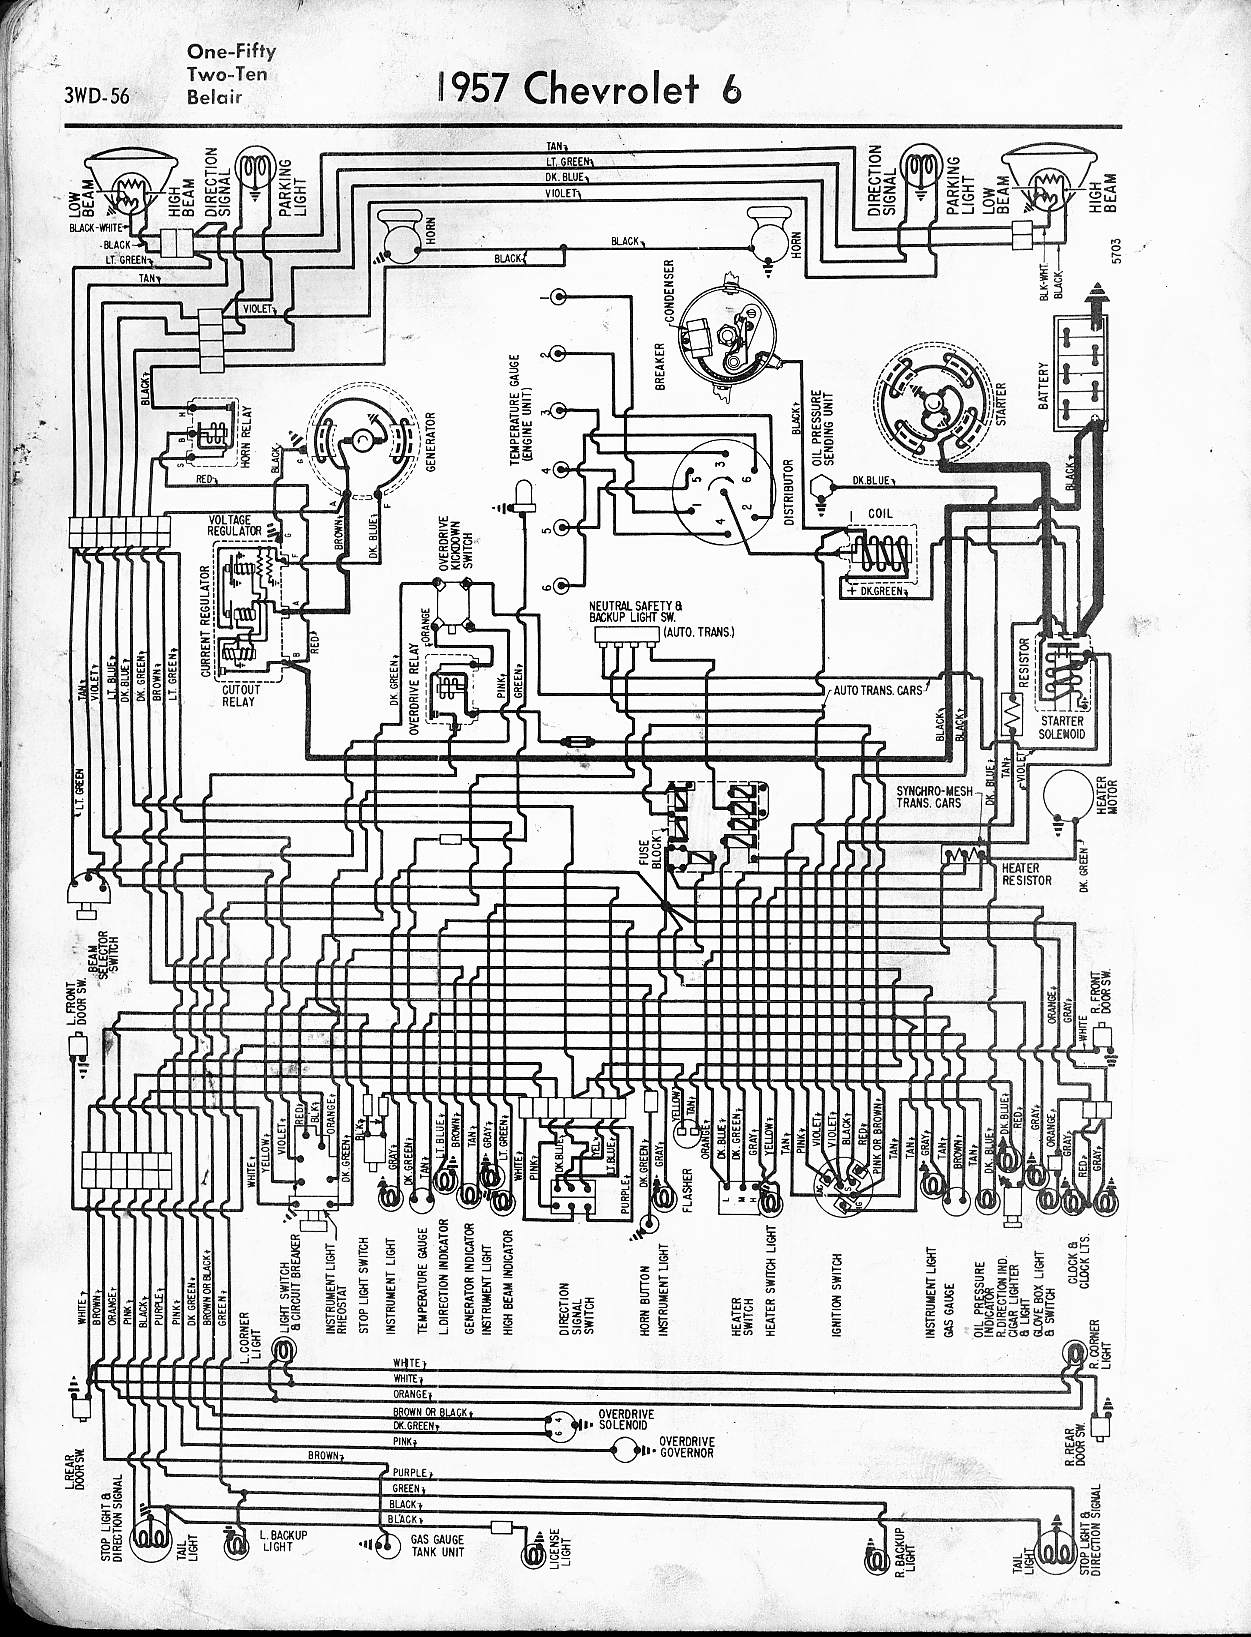 57 65 Chevy Wiring Diagrams Au Falcon Bem Diagram 1957 6 Cyl One Fifty Two Ten Belair